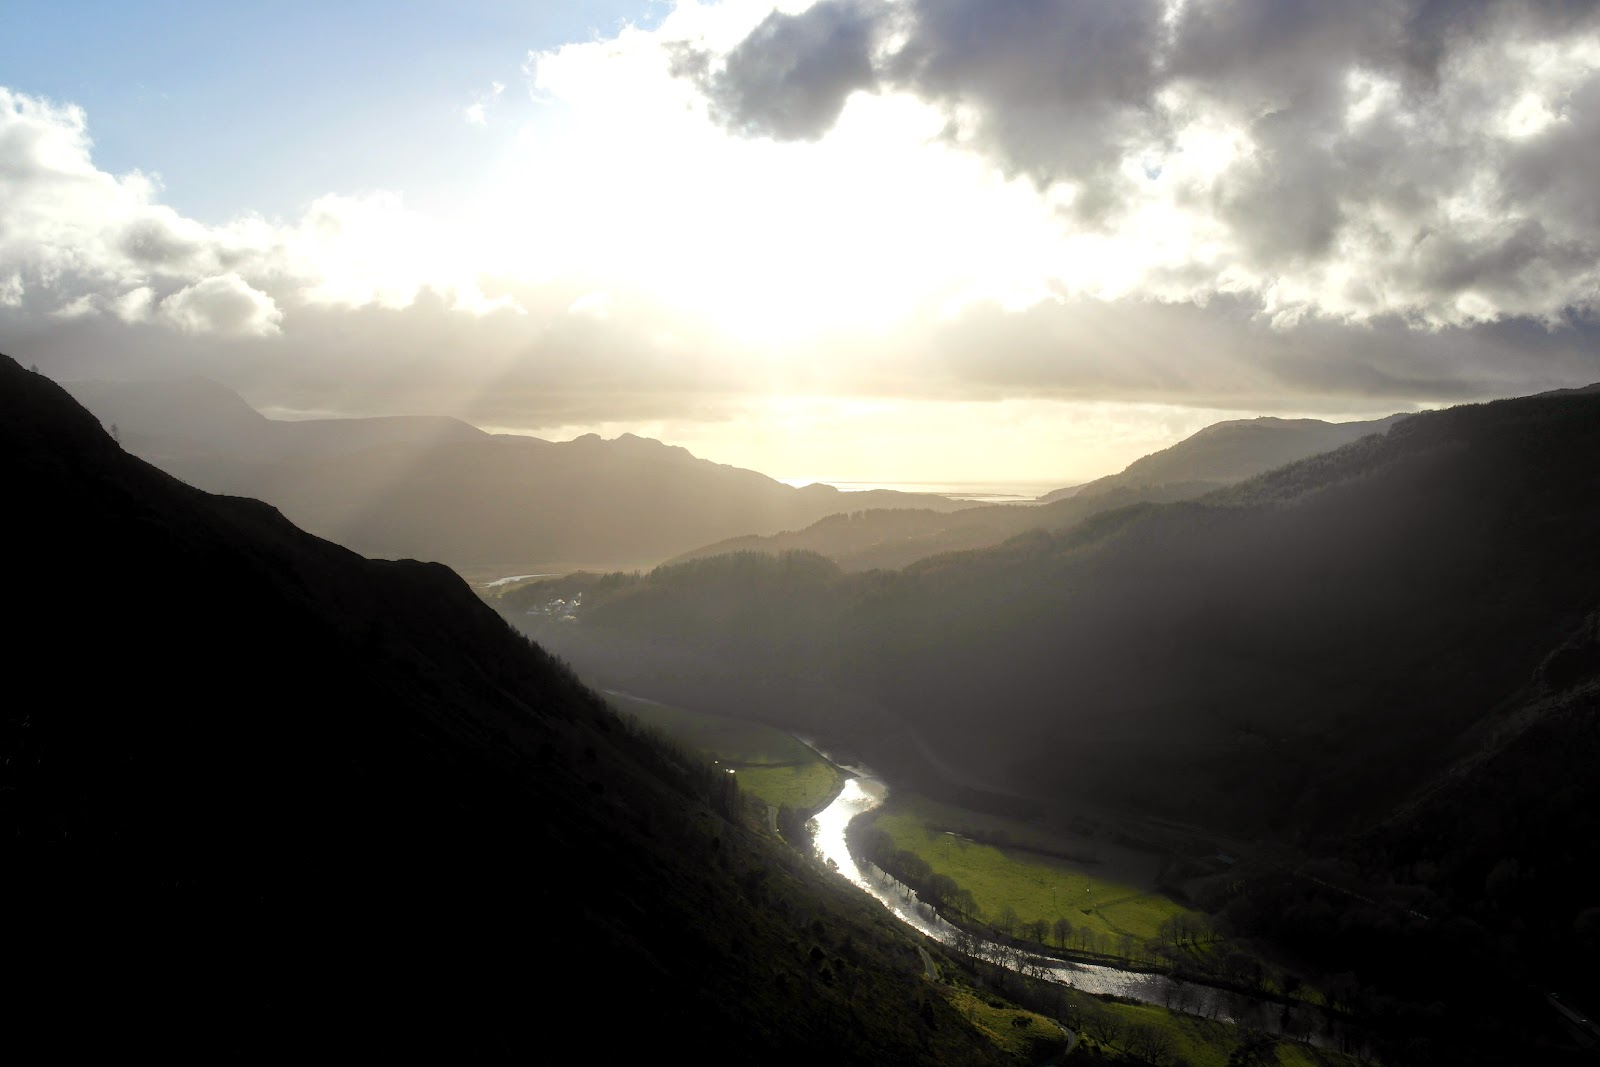 Precipice Walk, Snowdonia View of River Mawddach and Estuary